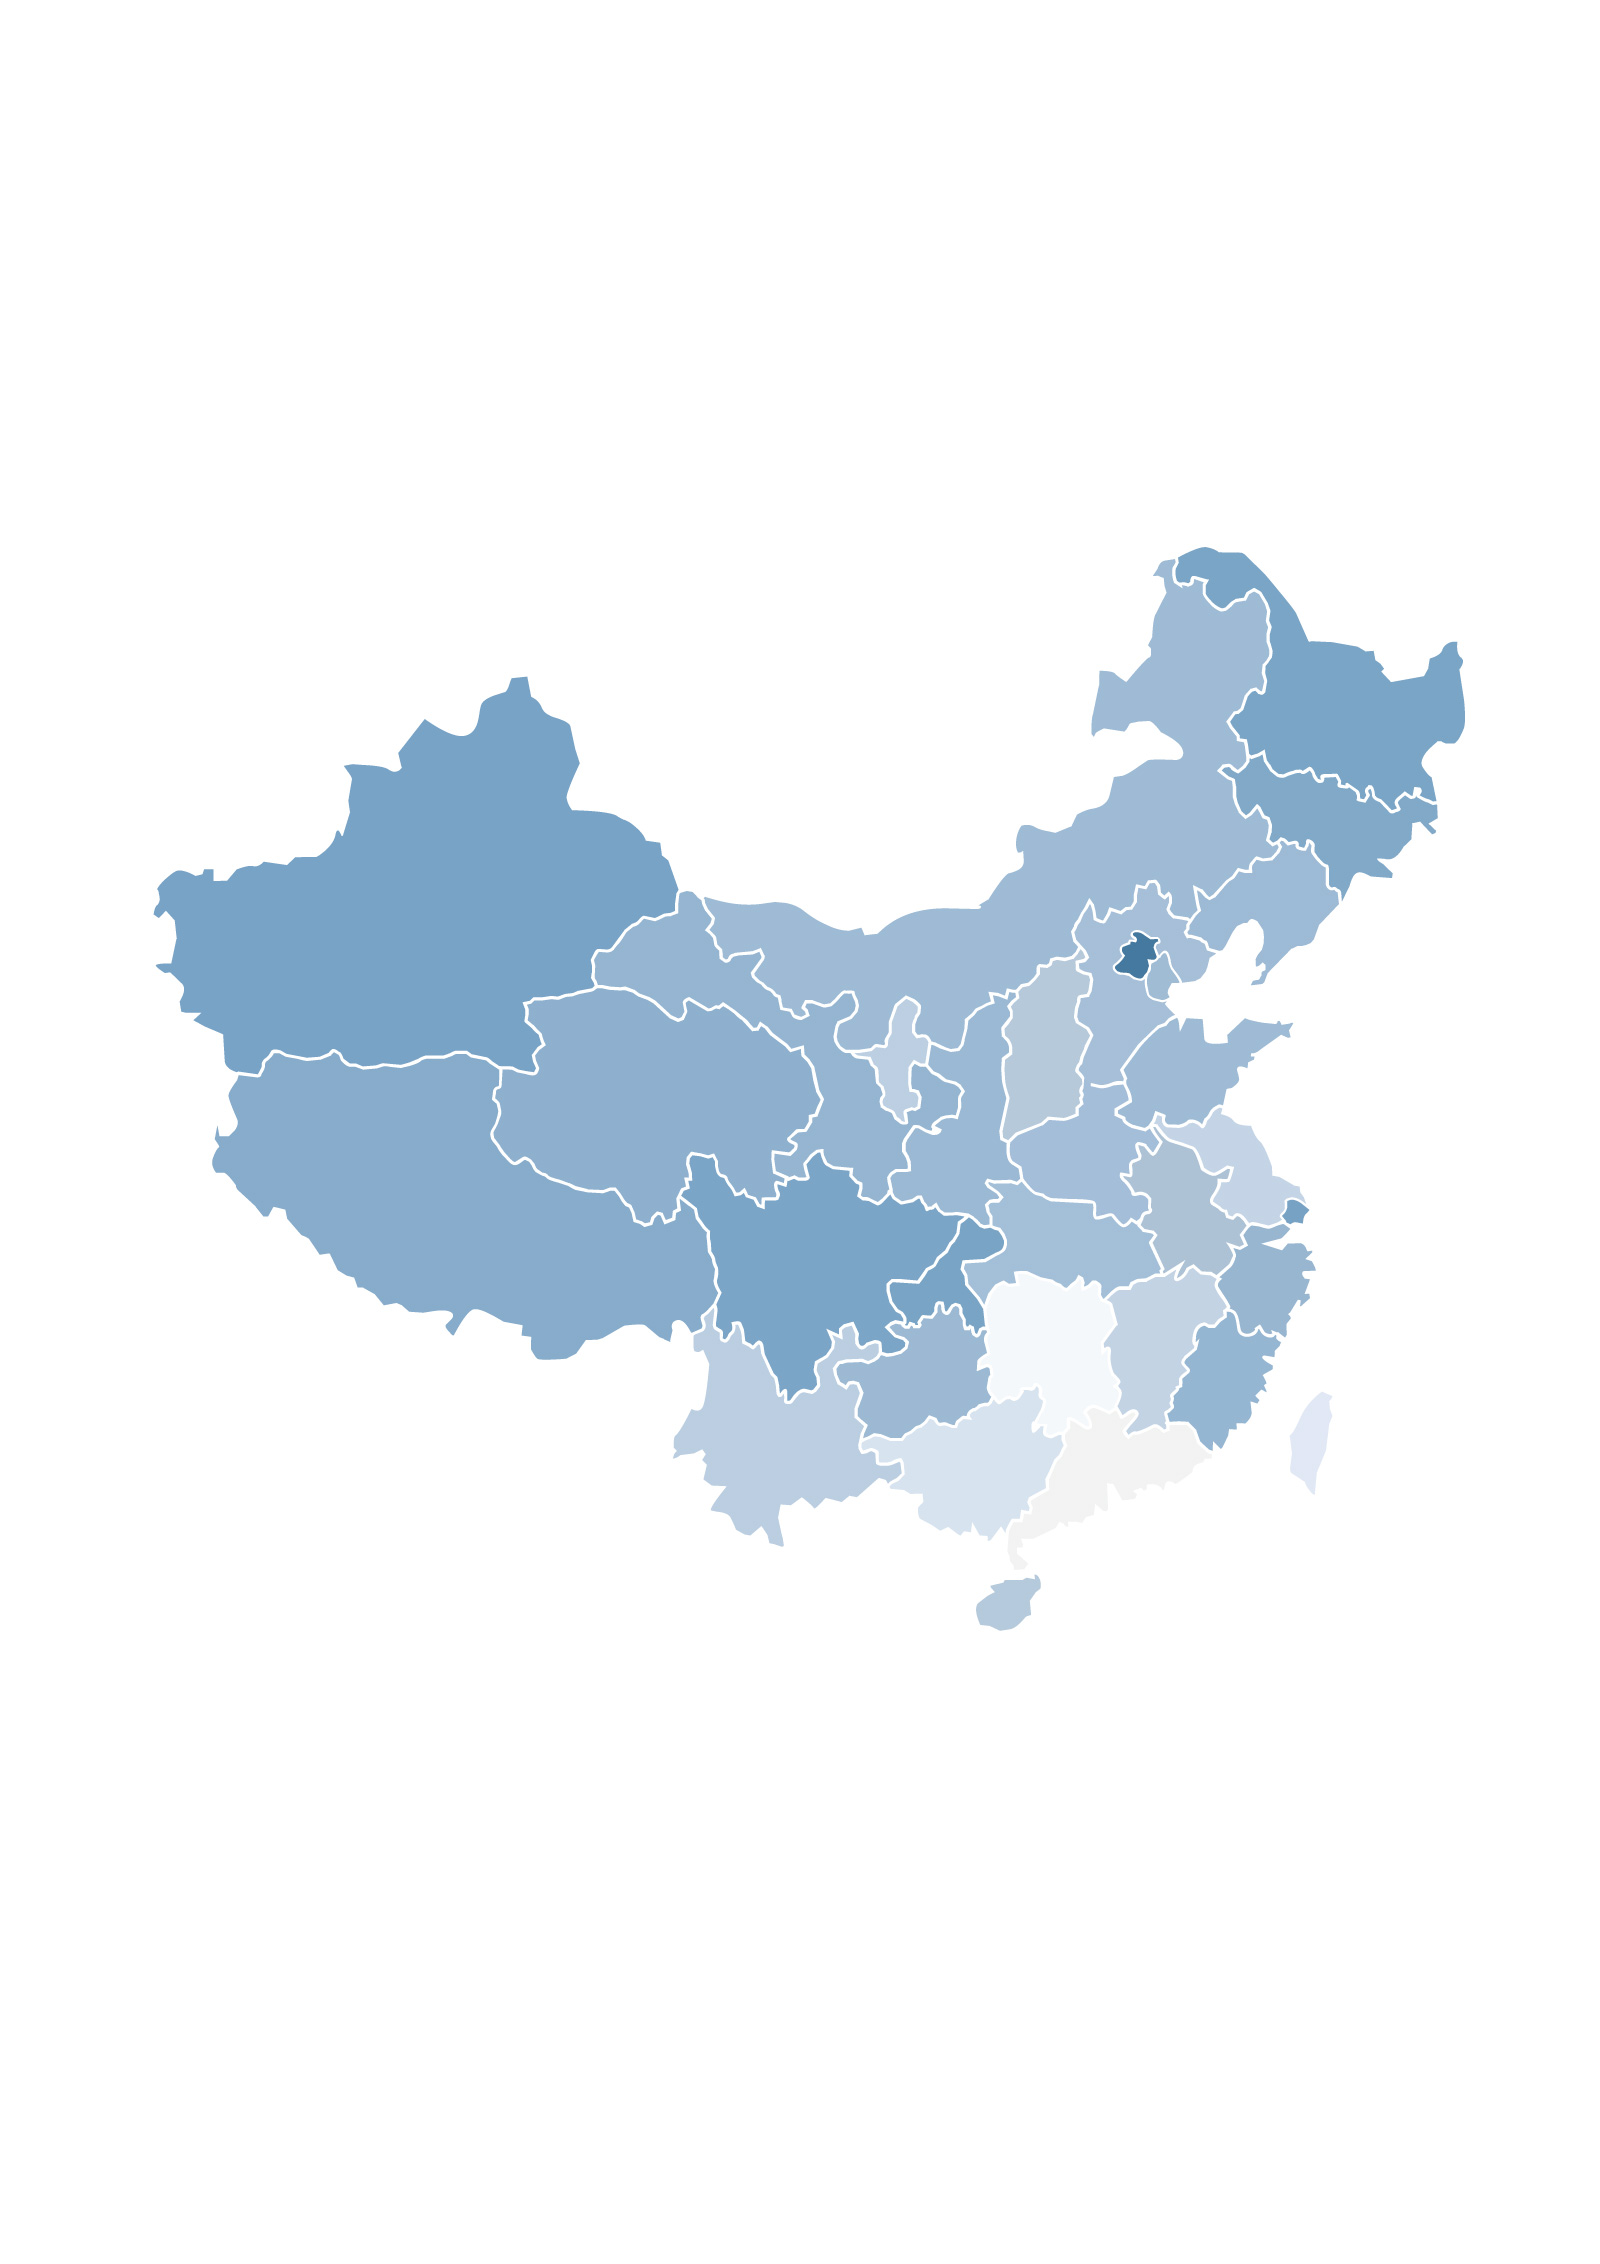 chinesefontdesign.com 2017 03 17 16 40 38 Map of China   China Illustrations Vectors AI ESP Free Download